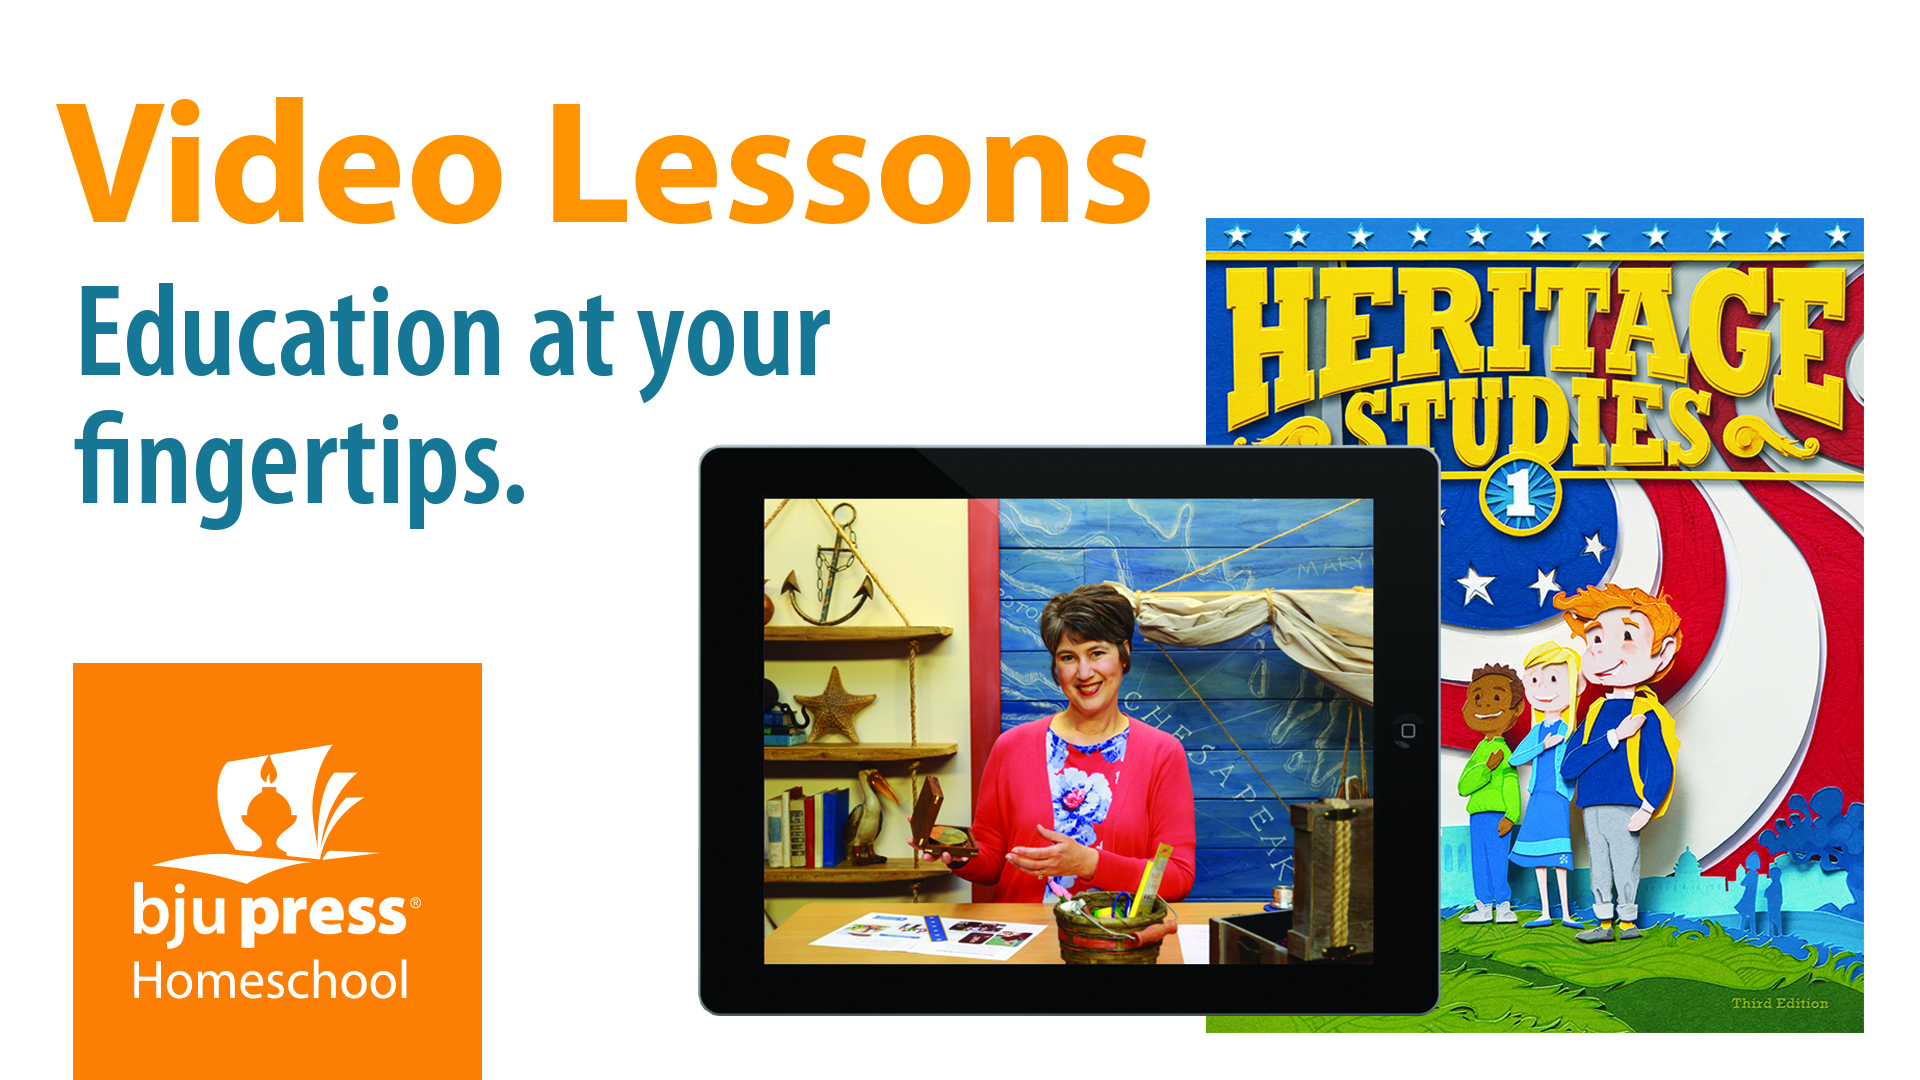 BJU Press Video Lessons. 100+ Online Courses The Ultimate Guide for Homeschool Success using online courses. #onlinecourses #homeschool #homeschoolcurriculum #ichoosejoyblog